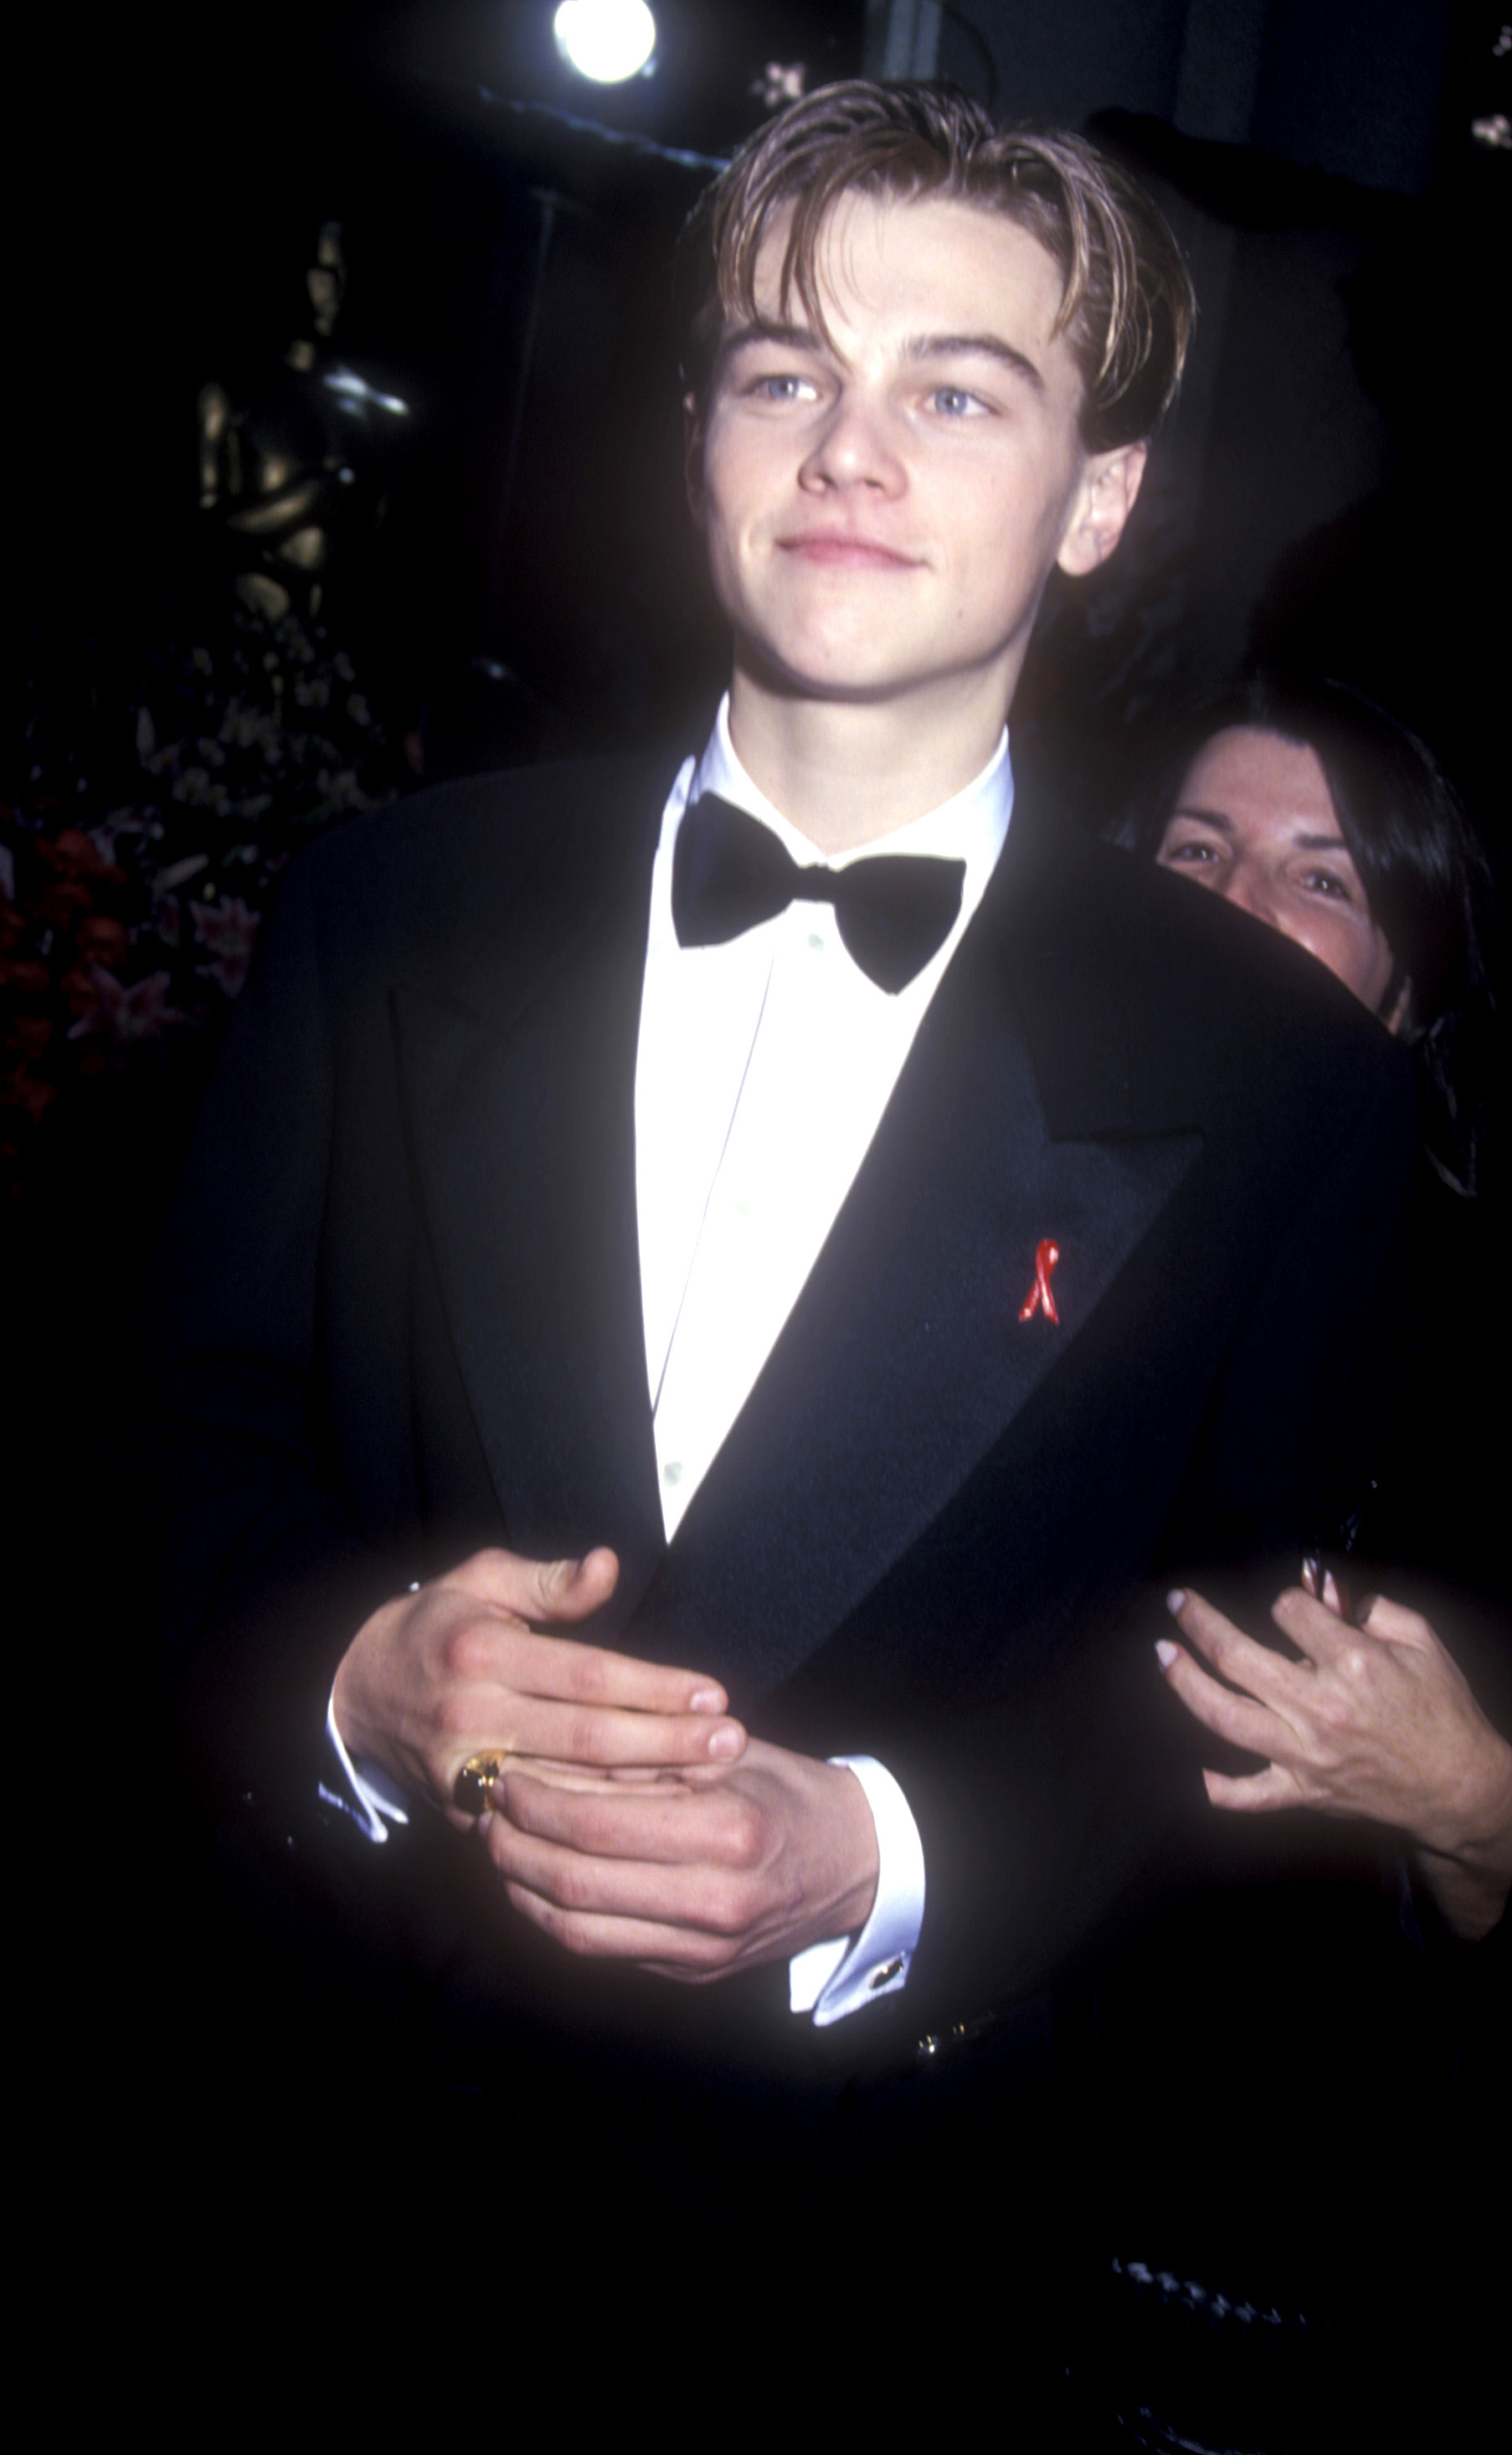 Leonardo DiCaprio during the 66th Annual Academy Awards in Los Angeles on March 21, 1994.